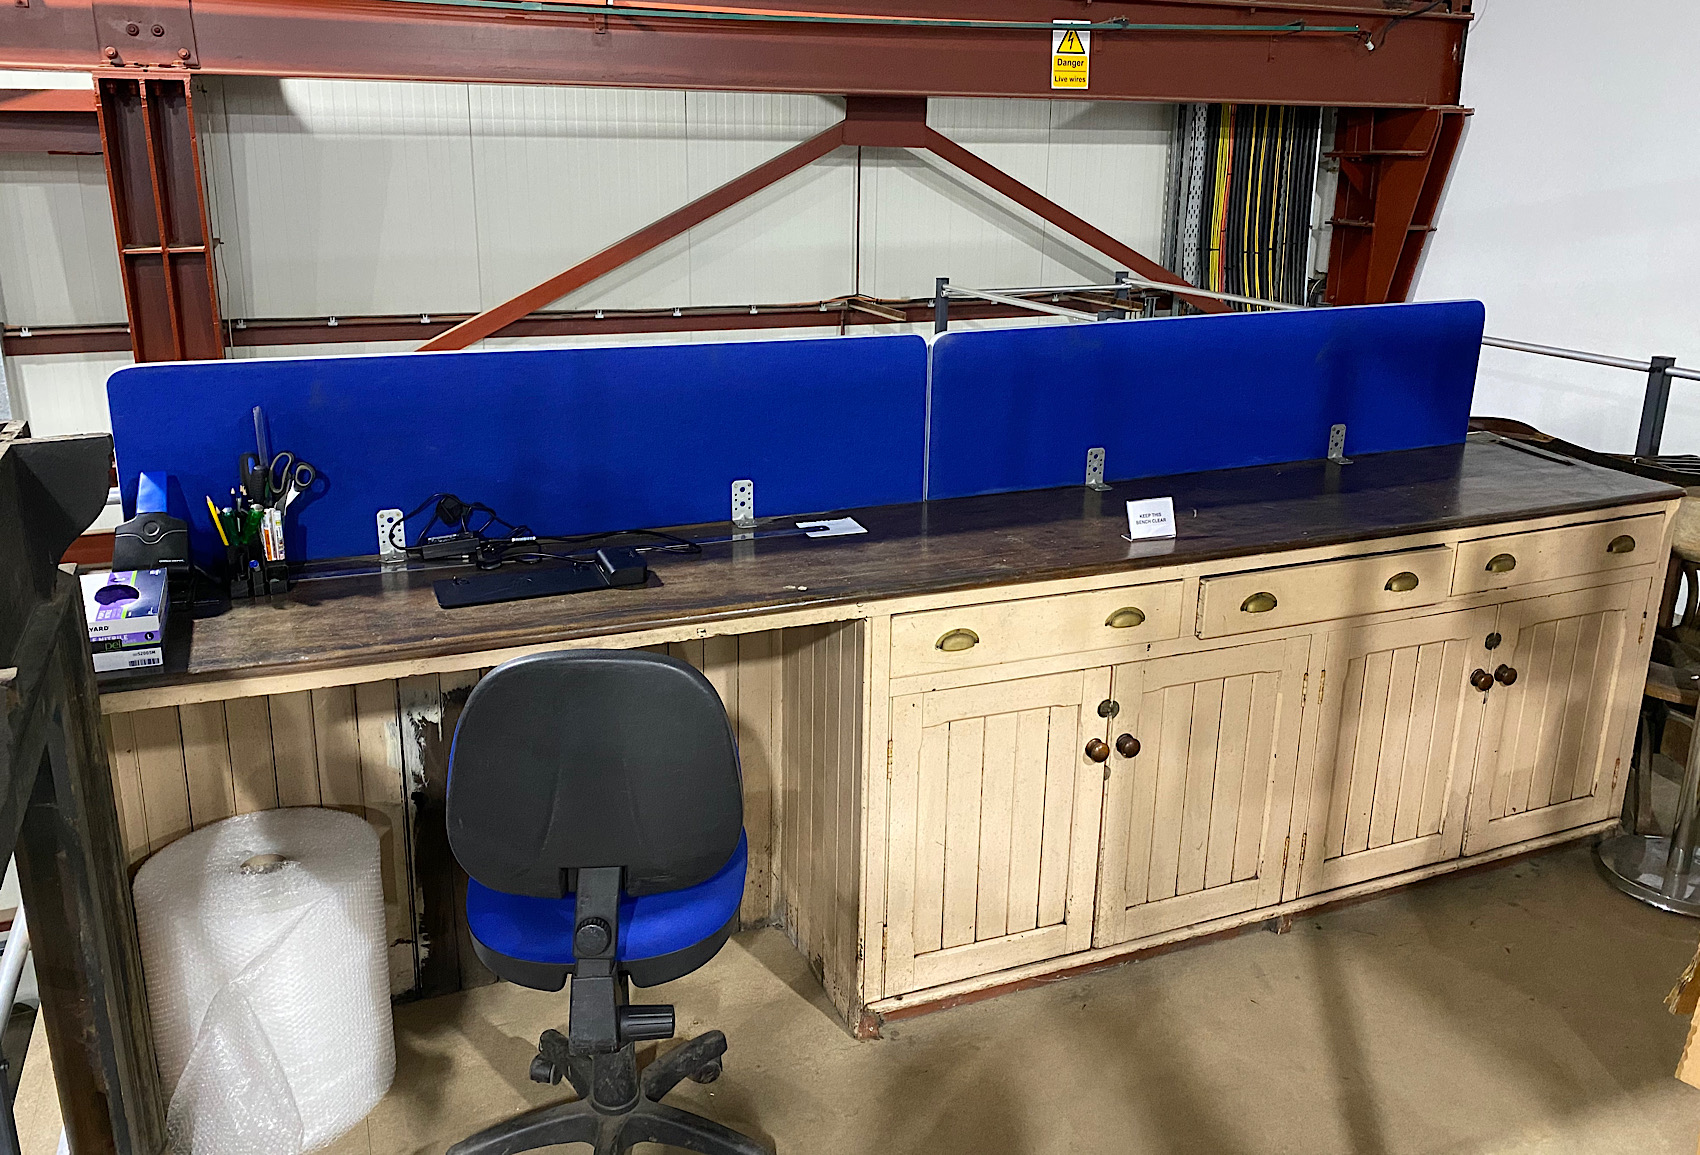 This desk which was collected from the Sheepford Boiler Works in Coatbridge had been in storage for 30 years. It was re-purposed as a working space on the mezzanine.